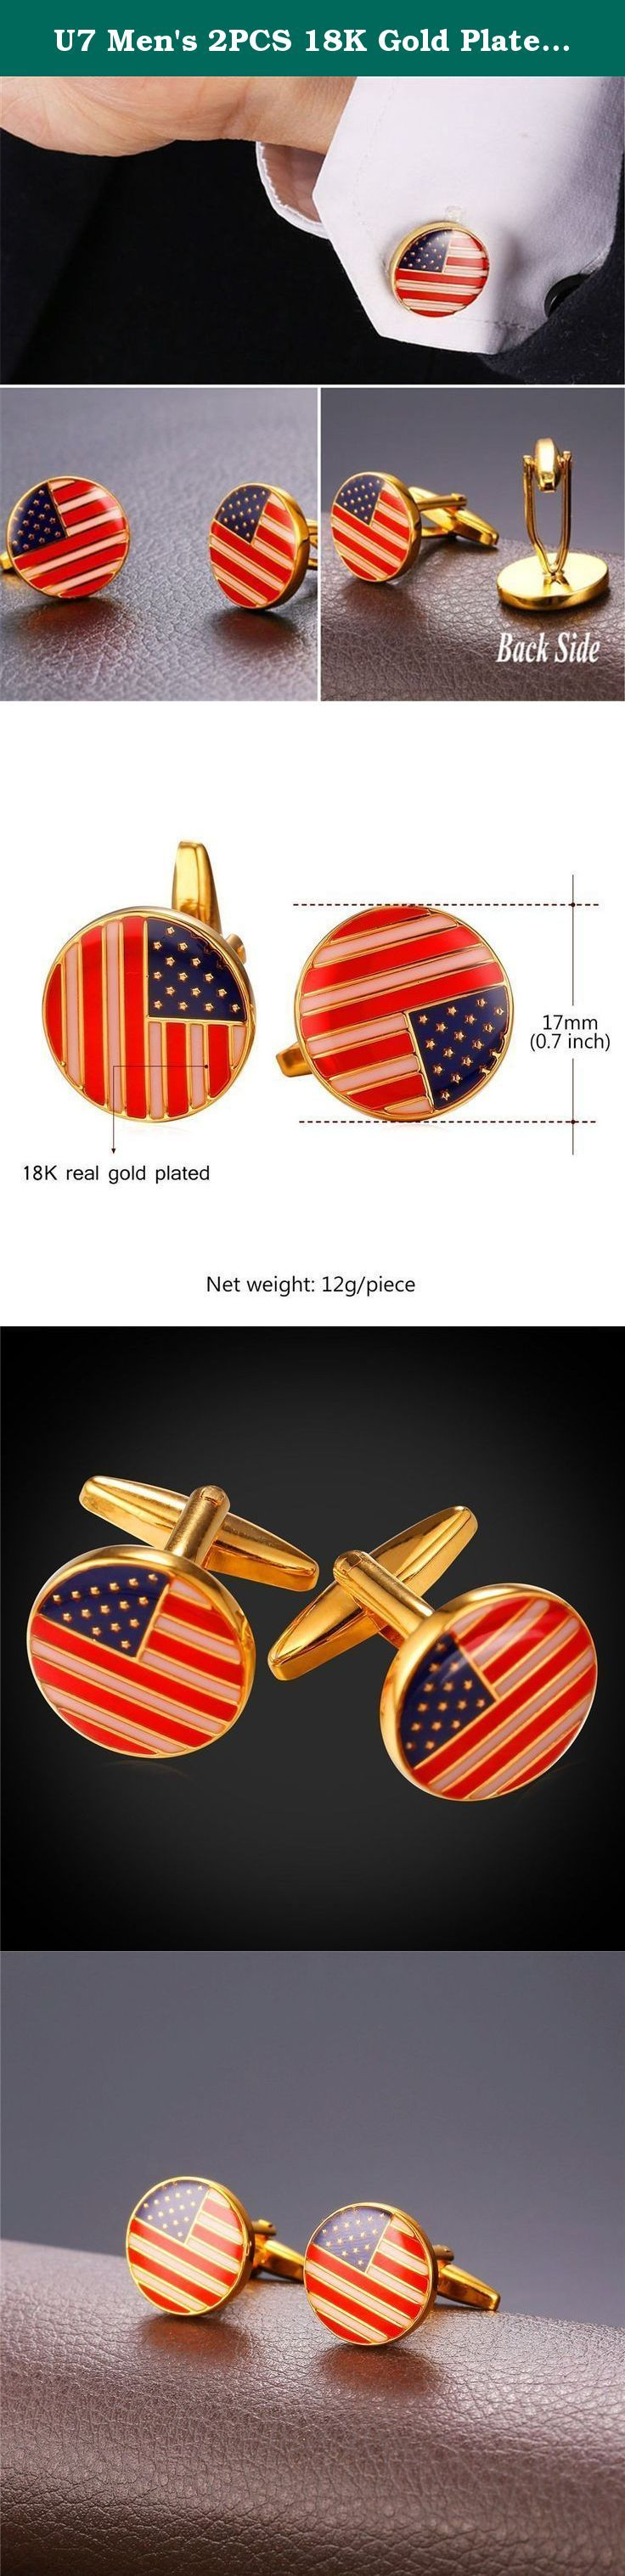 """U7 Men's 2PCS 18K Gold Plated Cufflinks the Old Glory USA Flag Design Shirt Cuff Link. flag of the United States design,round. Easy to match suit,perfect wear on party,wedding,National Day,father's day,graduation. Gold plated copper is a method of depositing a thin layer of gold onto the surface of copper. Brand name: U7 """"U7"""" means love you seven days for a week. U7 Jewelry is fashion jewelry seller in Amazon. U7 Jewelry is made with German imported polishing and electroplating equipment...."""